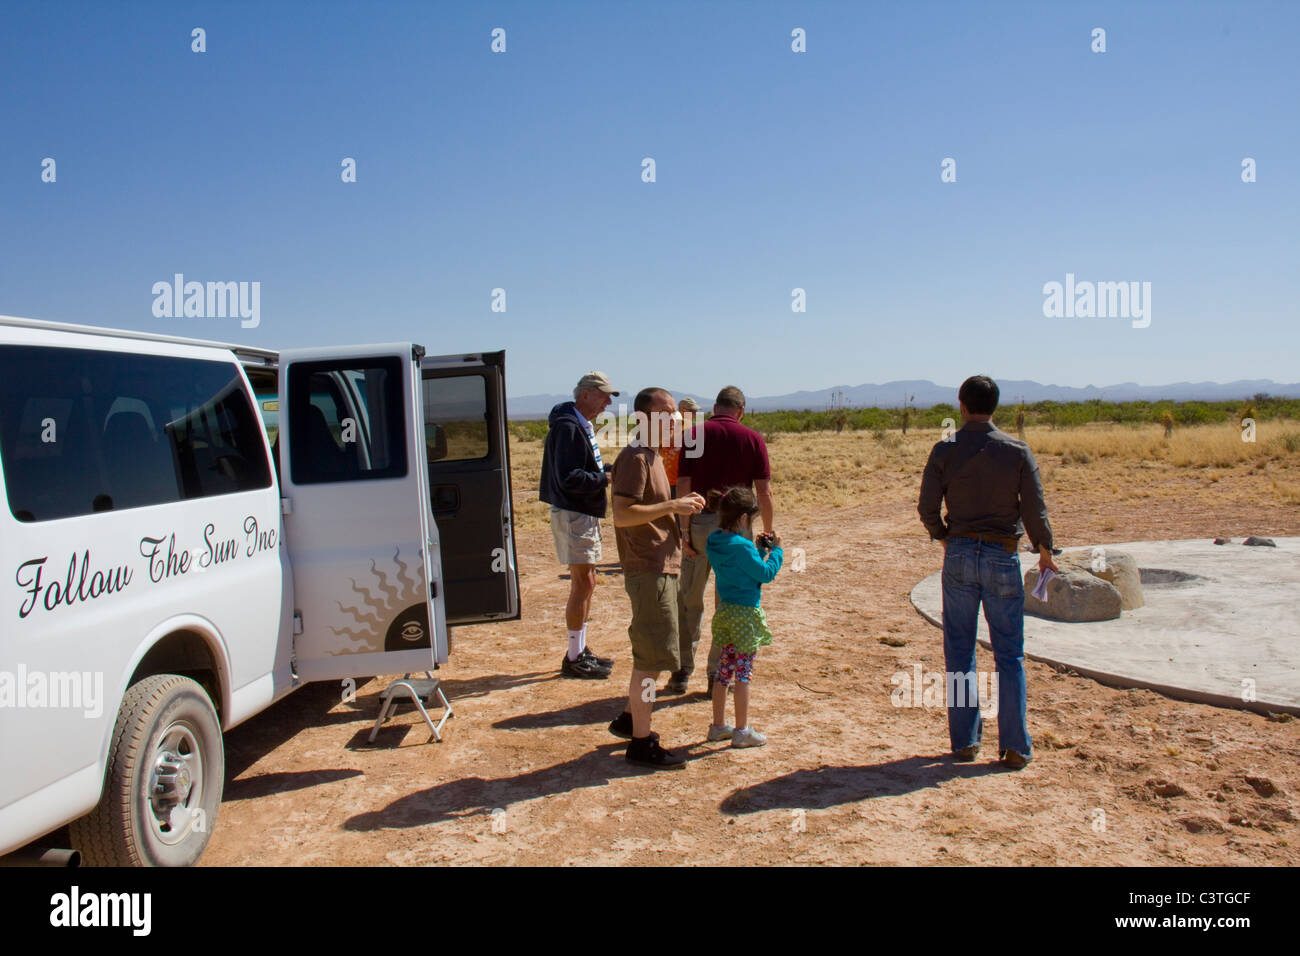 Preview Tour of Spaceport America, the world's first commercial spaceport, near Truth or Consequences, NM - Stock Image